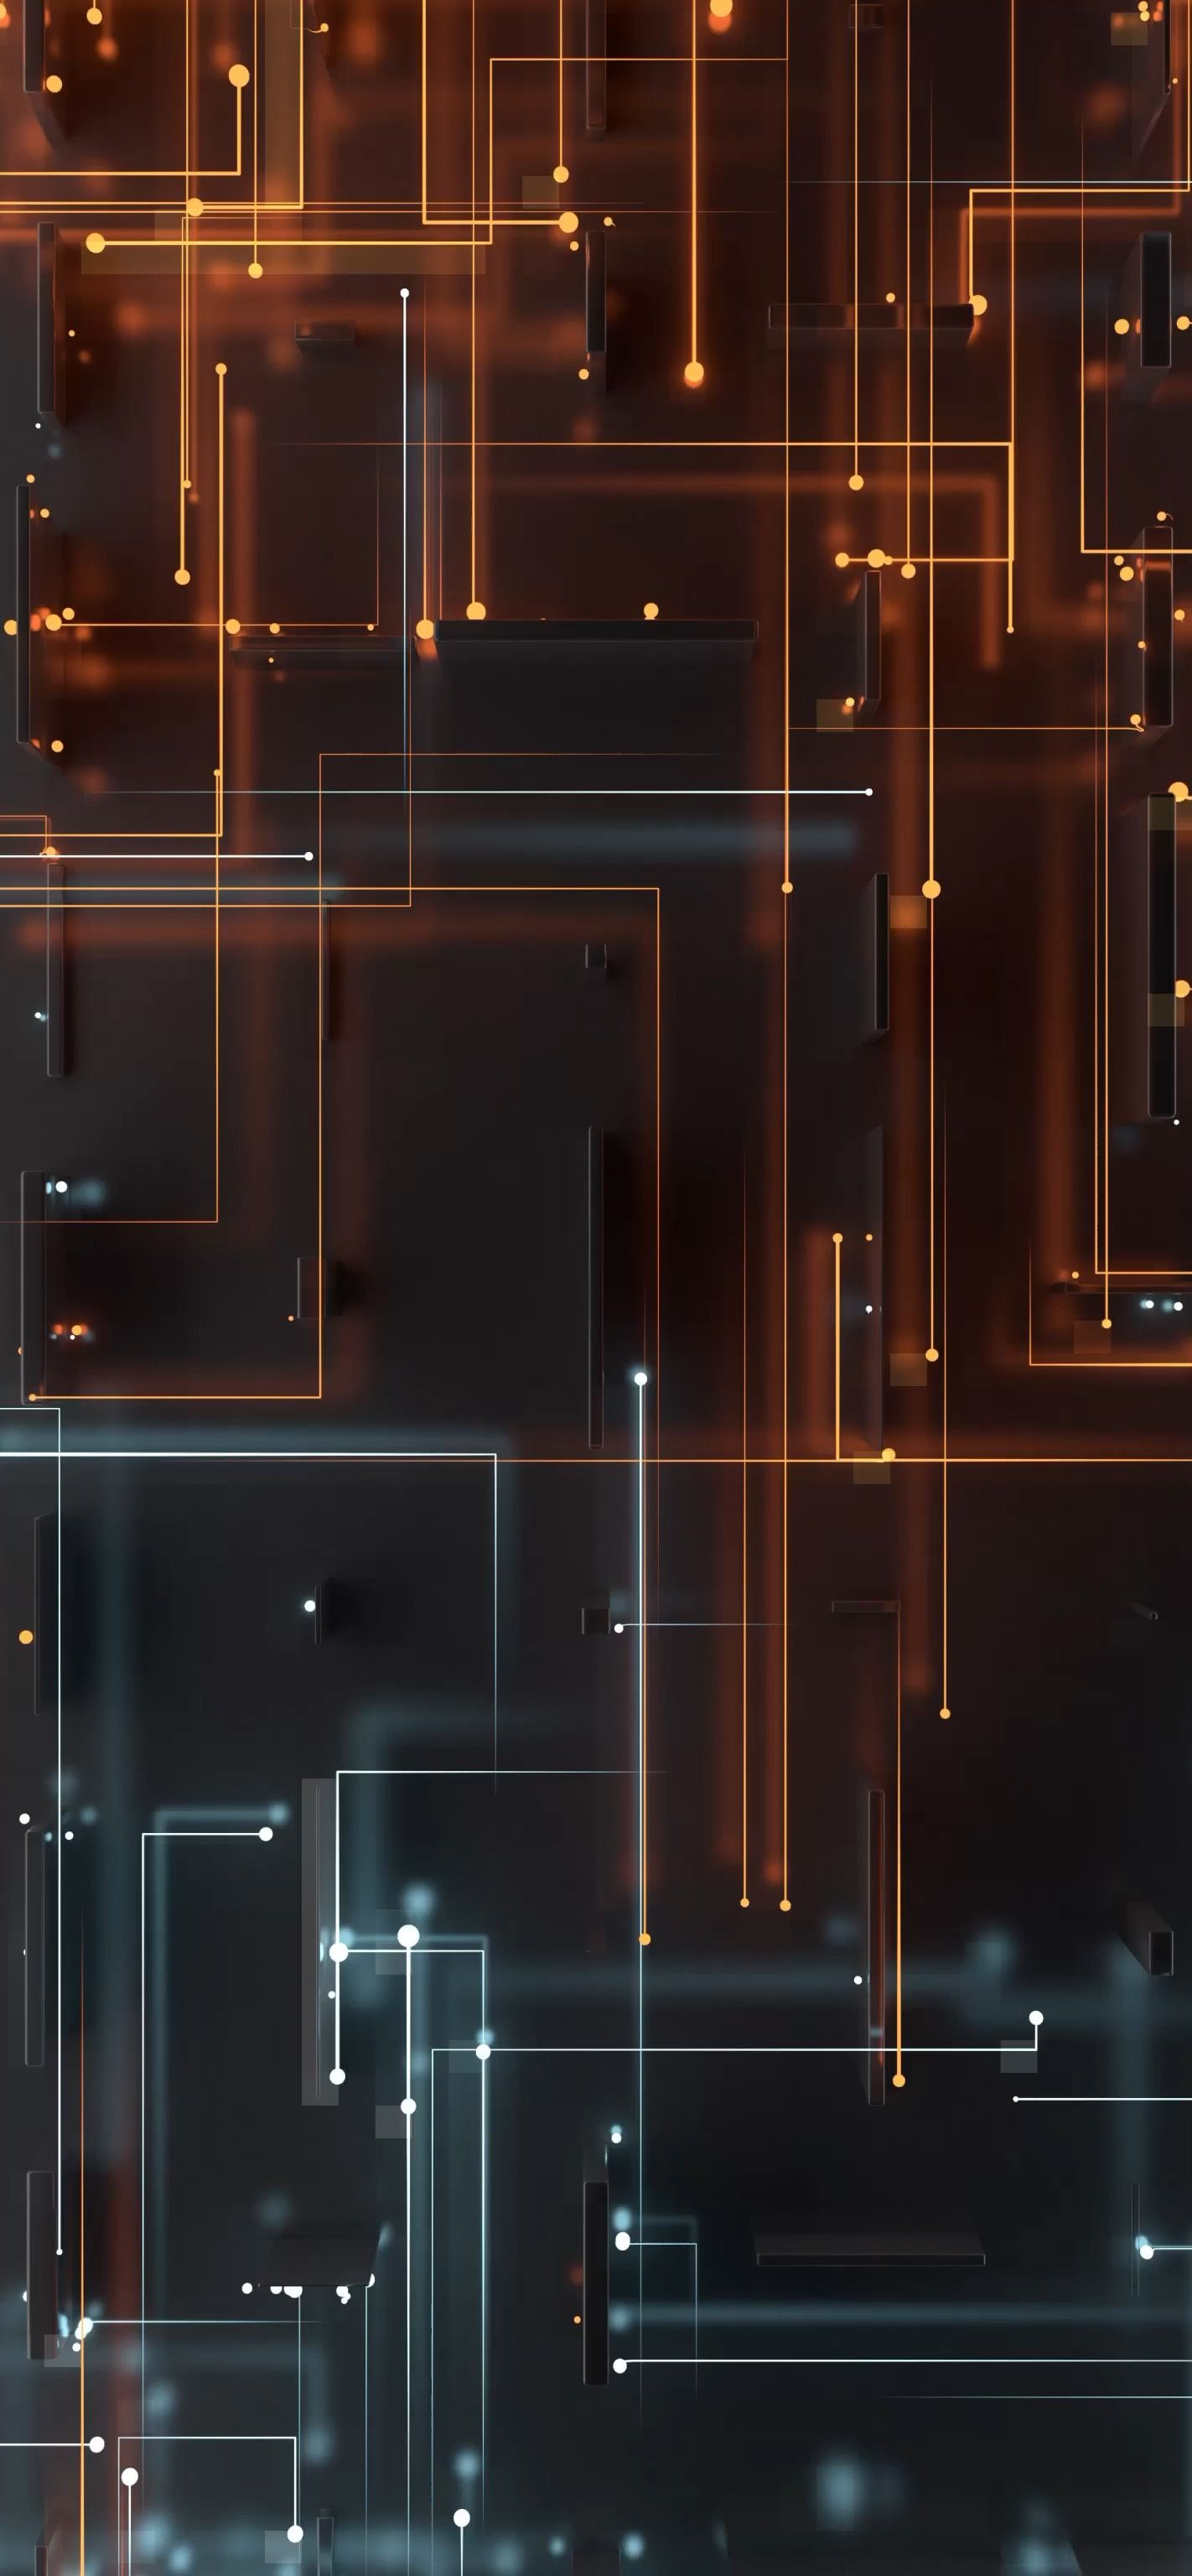 Microchip Live Wallpaper Wallpapers Central Dark Phone Wallpapers Phone Wallpaper Design Home Screen Wallpaper Hd Home screen live wallpaper iphone 11